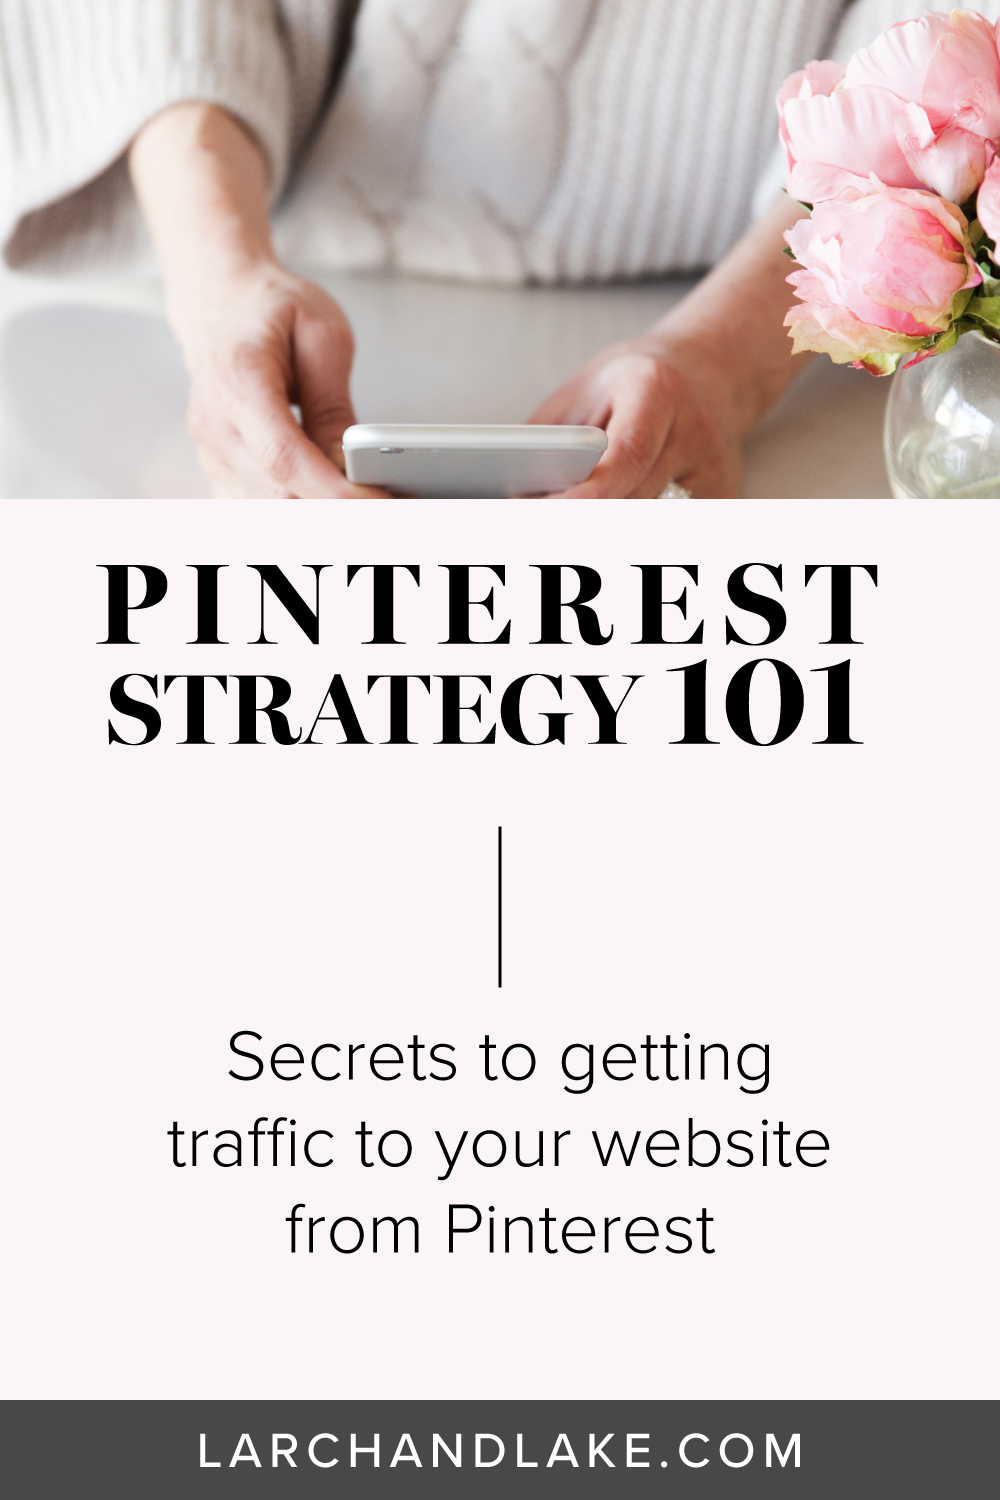 72% of users say that Pinterest inspires them to shop when they weren't even looking. Get those users to your website to you can build your brand and make sales. #PinterestMarketing #MarketingStrategy #Pinterest